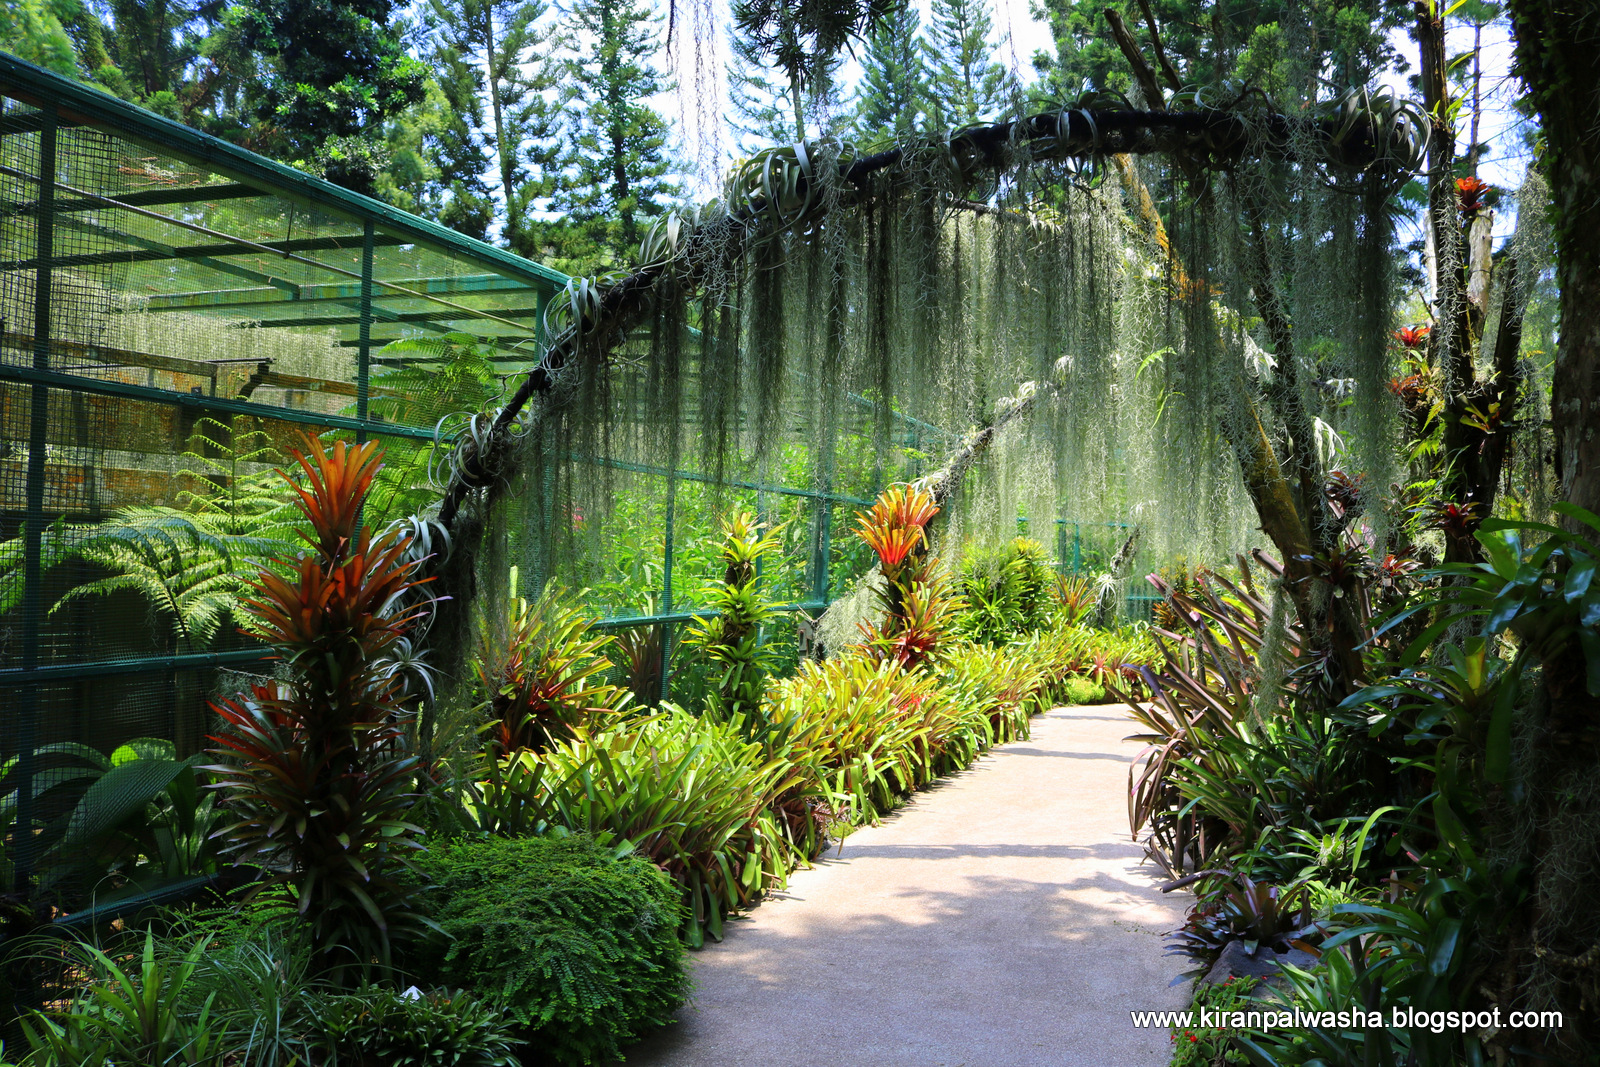 Singapore Botanical Garden Is One Of The Best Gardens And Inside Is Located  National Orchid Garden Too. Orchid Is Singapore National Flower.